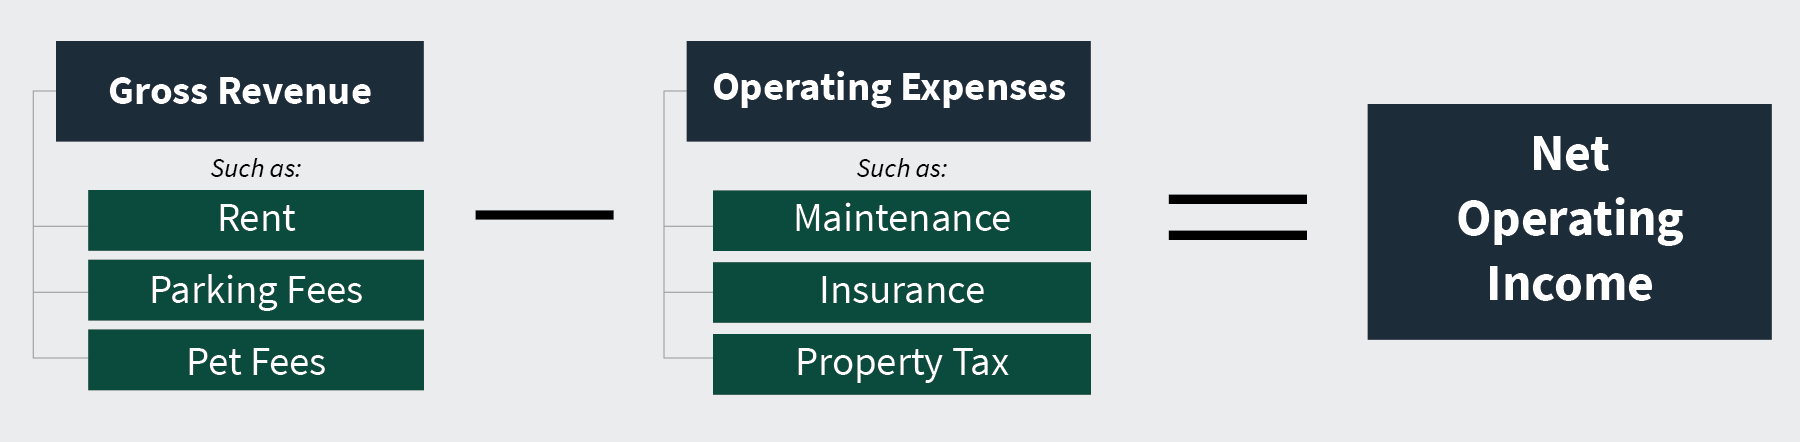 Net Operating Income equals Gross Revenue, such as rent and parking fees, minus Operating Expenses, such as maintenance and property tax